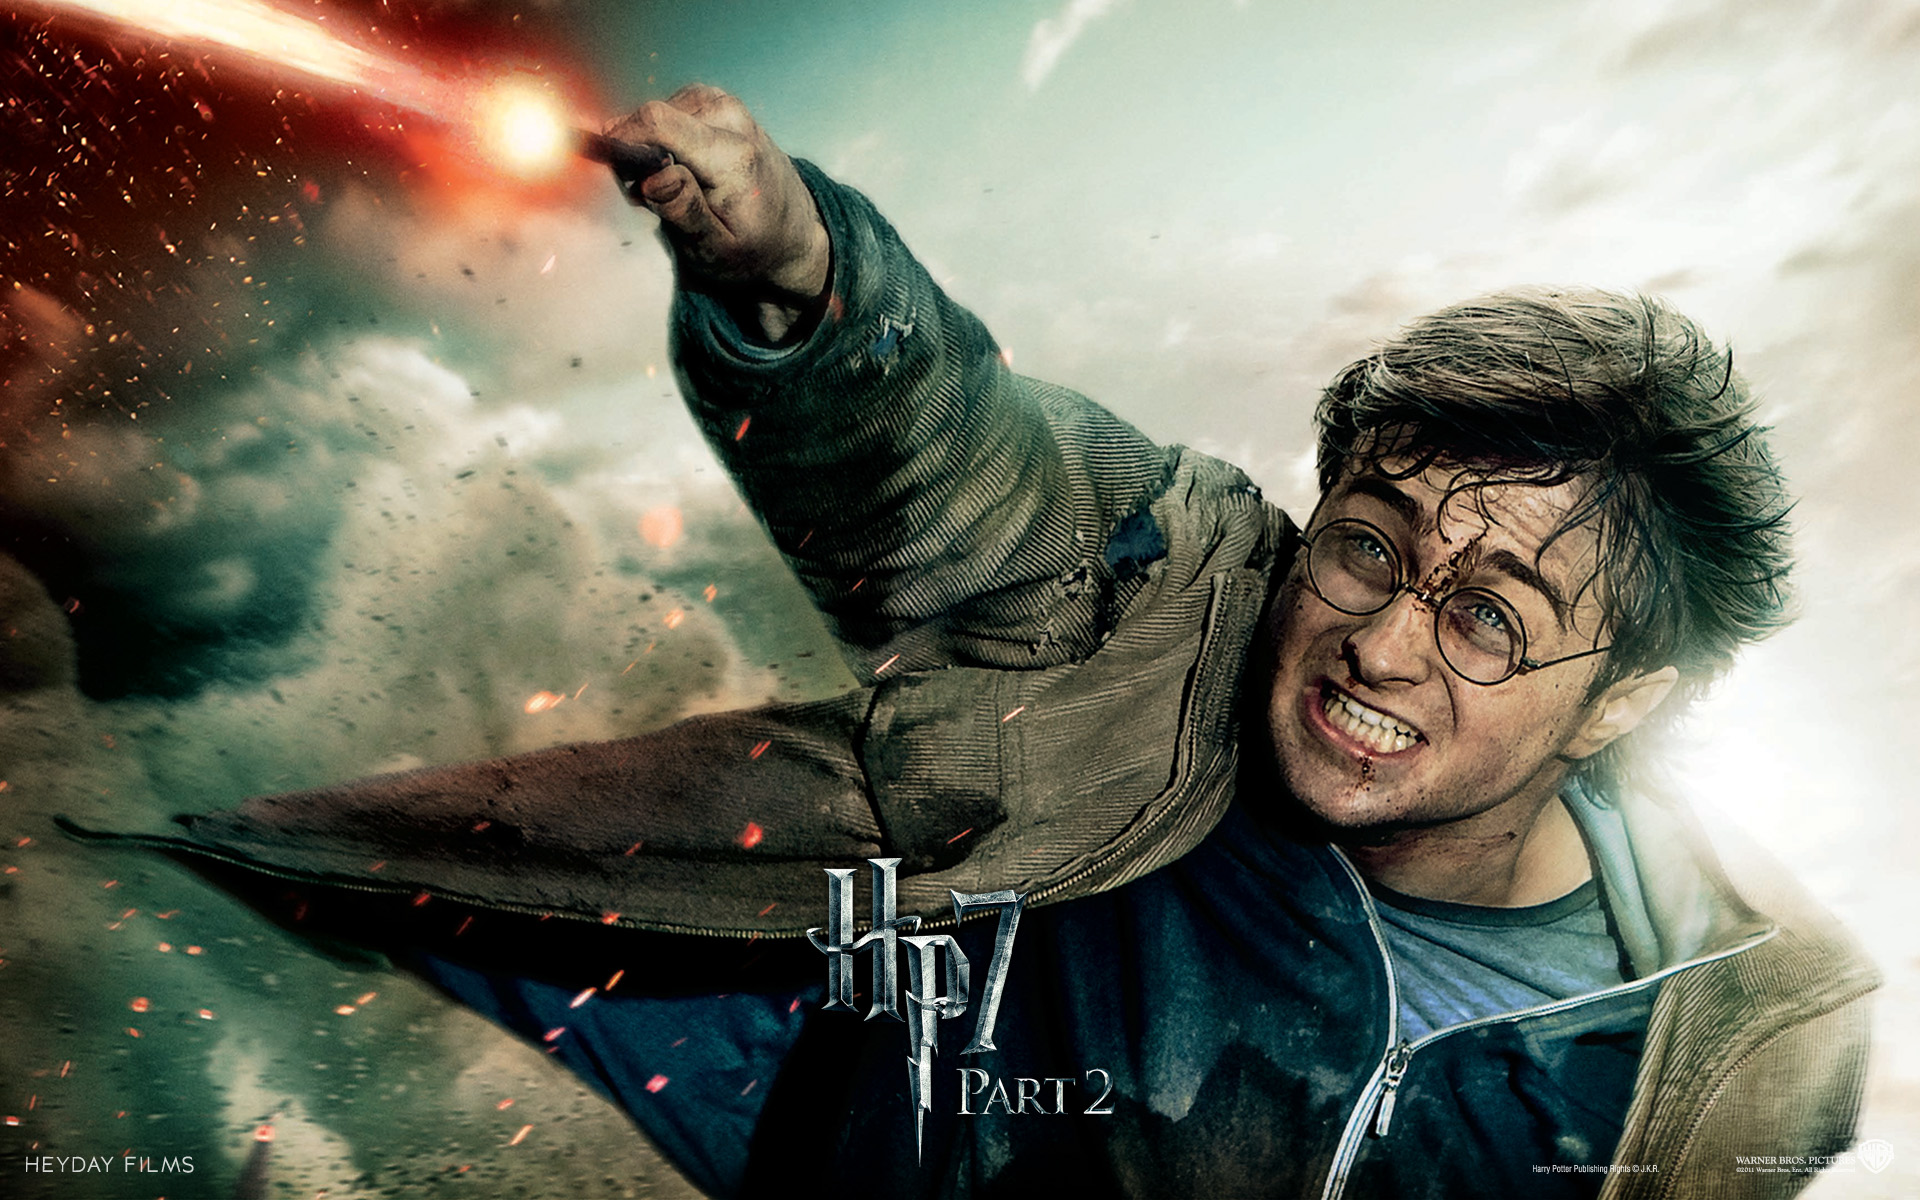 Good Wallpaper Harry Potter Ultra Hd - harry-potter-in-deathly-hallows-part-2-wallpaper  Snapshot_25758.jpg